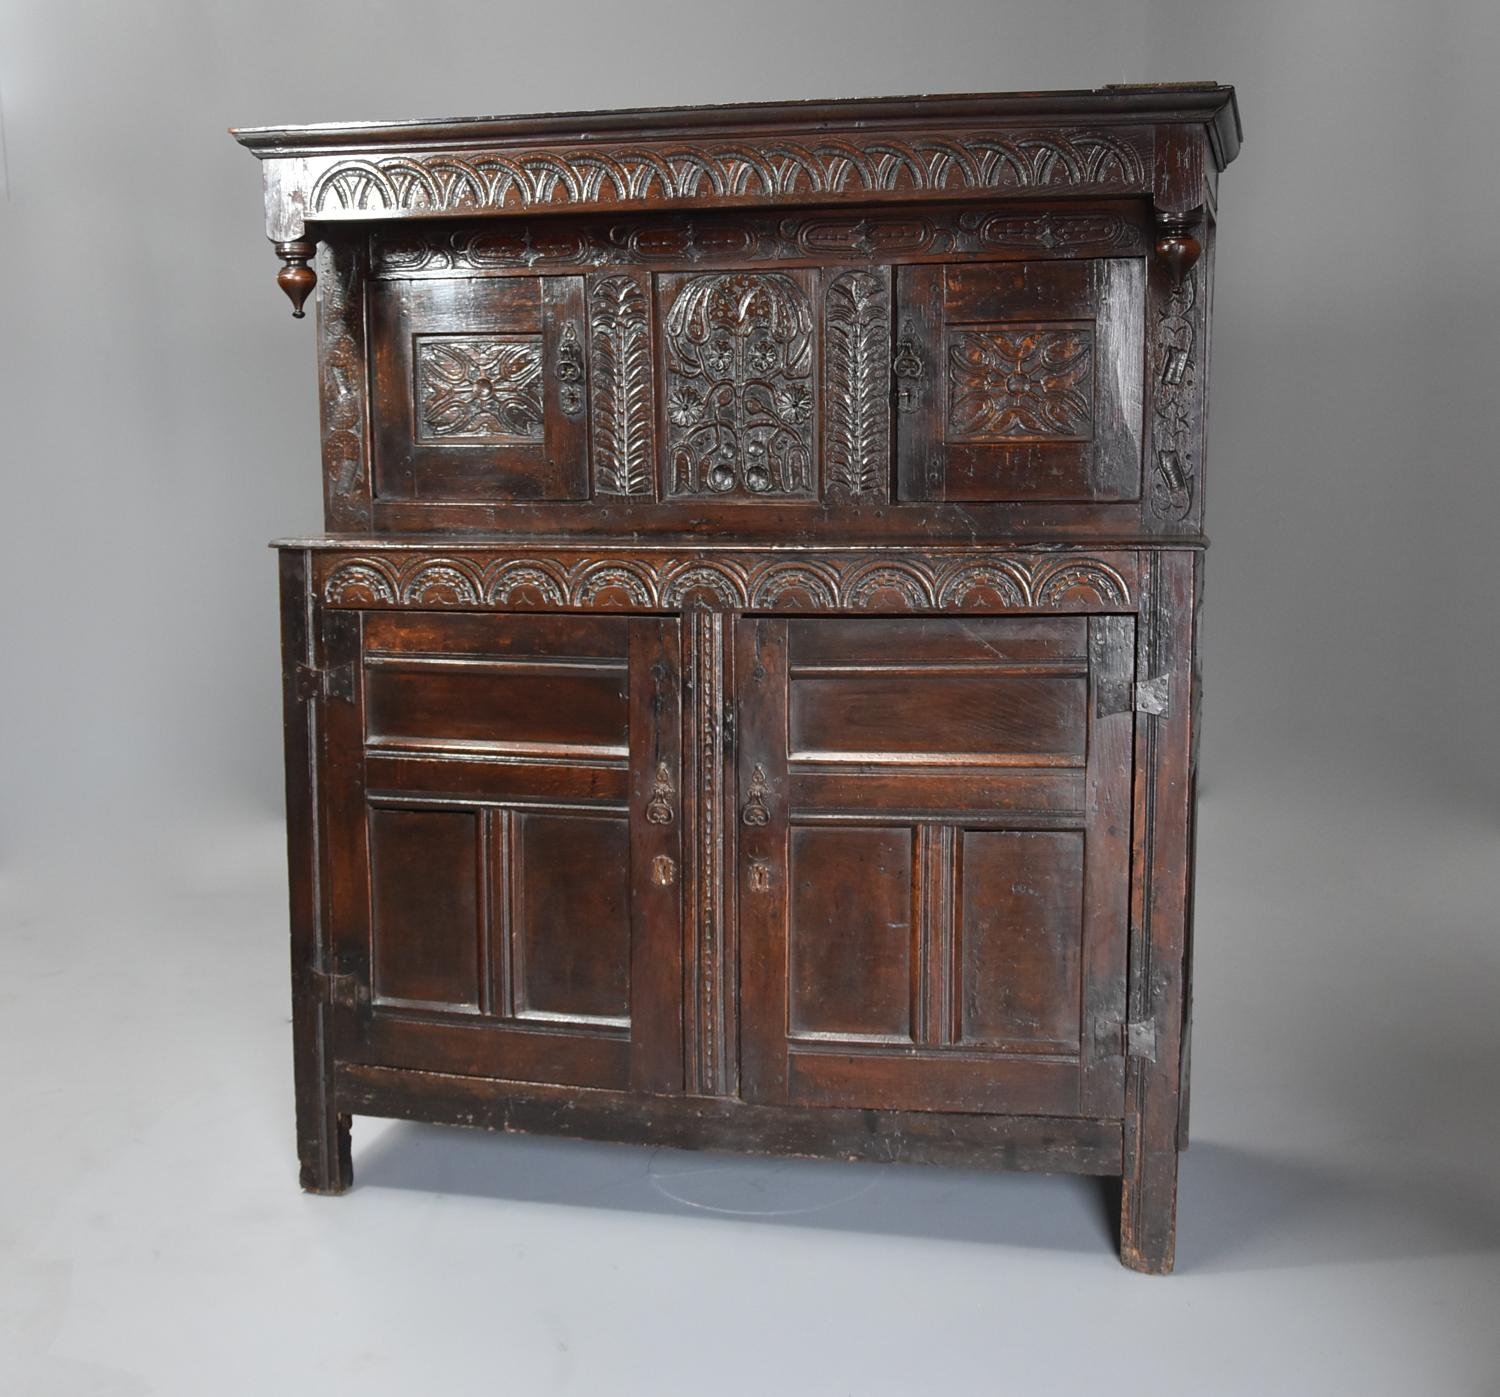 Wonderful mid 17thc carved oak press cupboard with superb patina